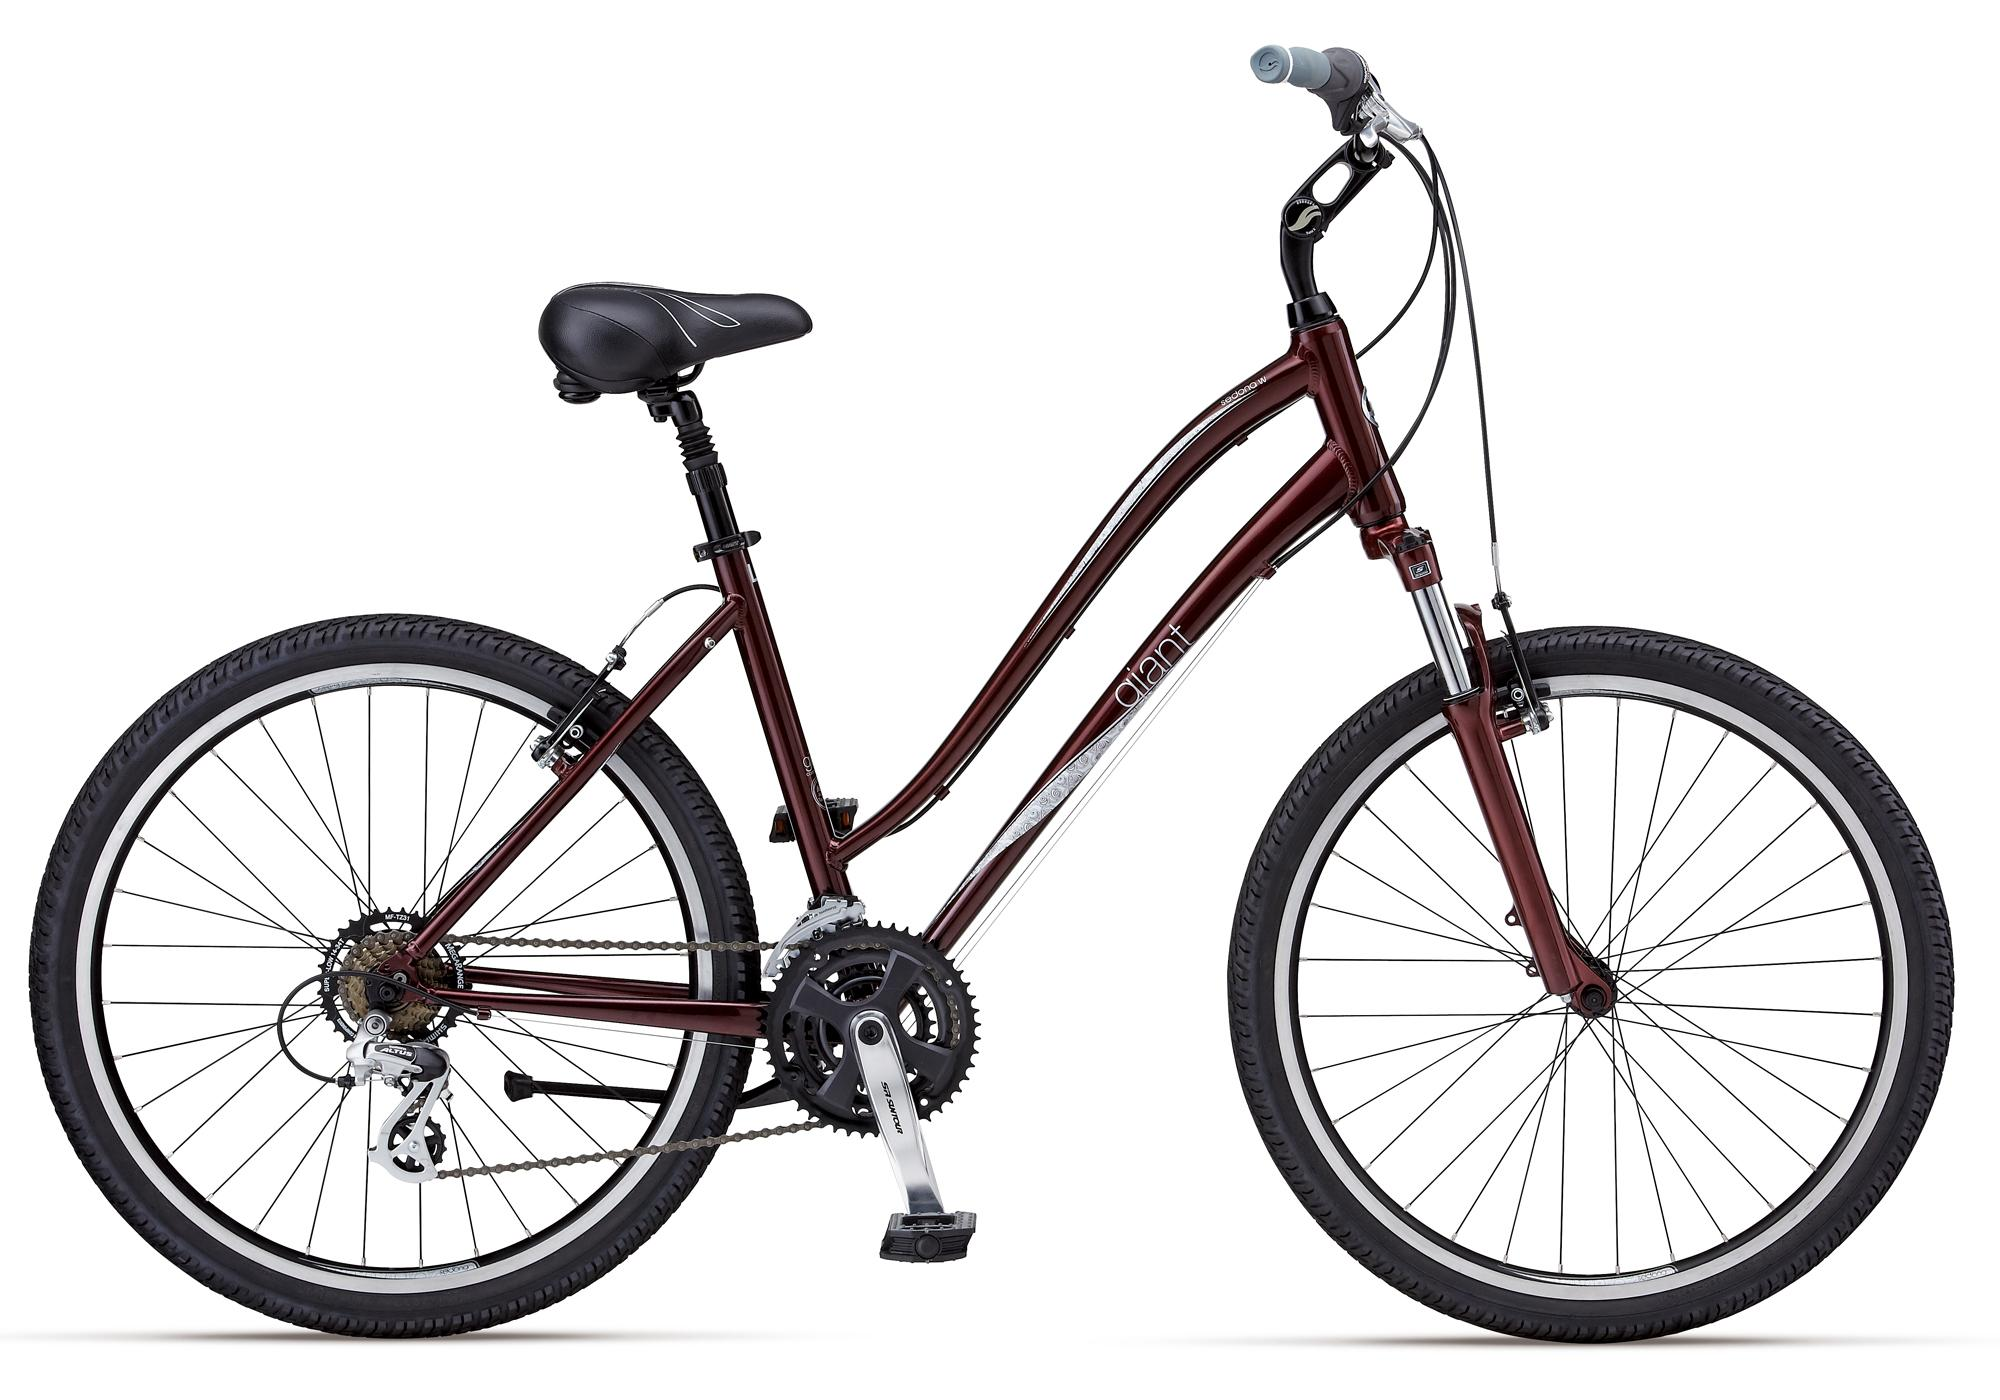 http://www.giant-bicycles.com/_generated/_generated_ru/bikes/models/images/2000/2012/Sedona_W_red.jpg